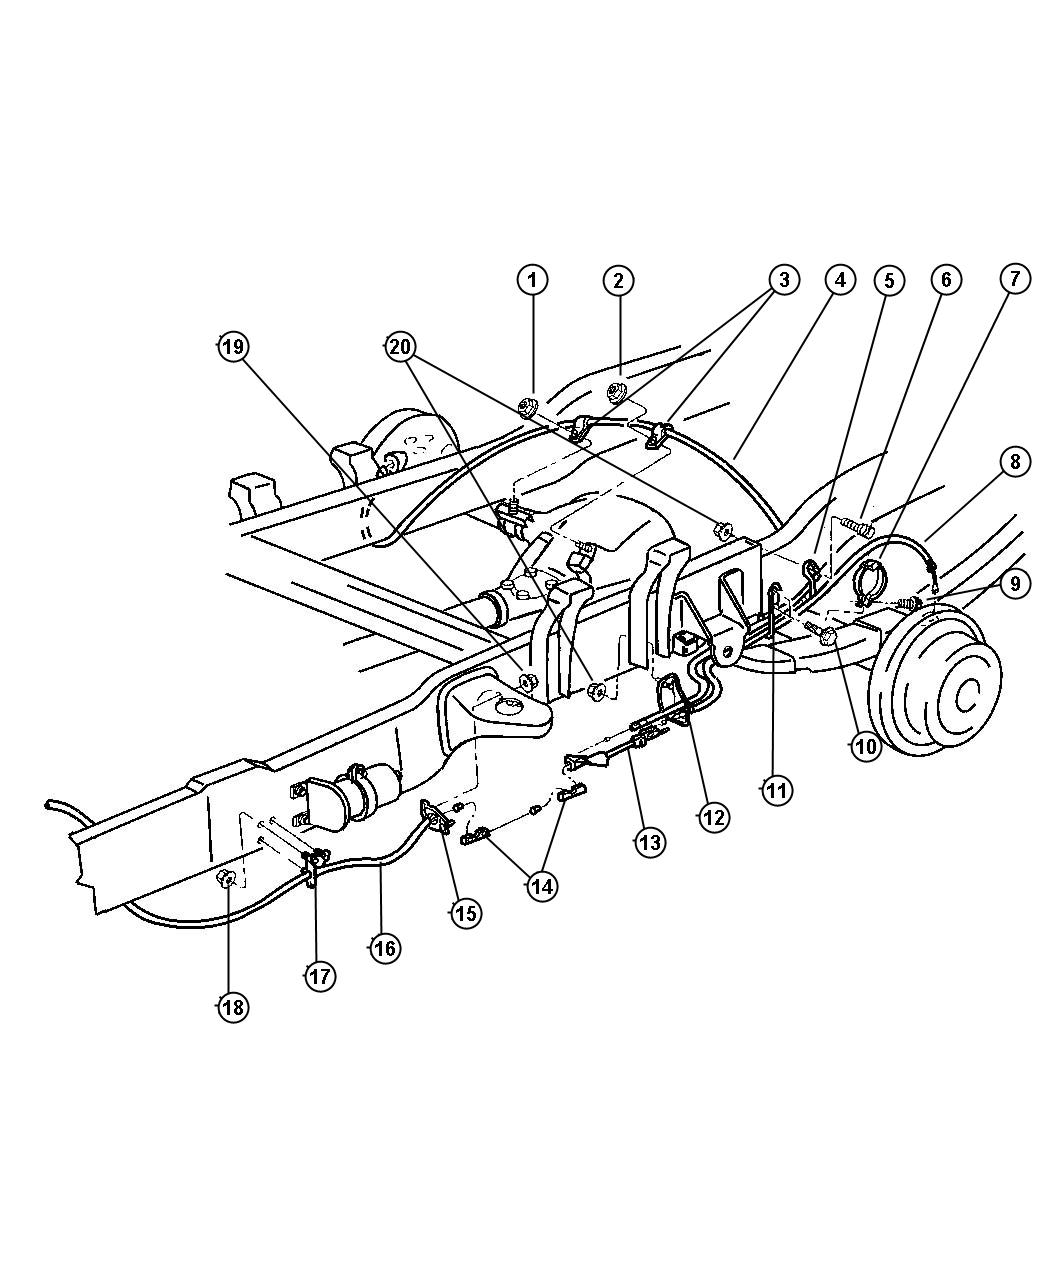 1999 Dodge Ram 1500 Brake Line Diagram Pictures to Pin on